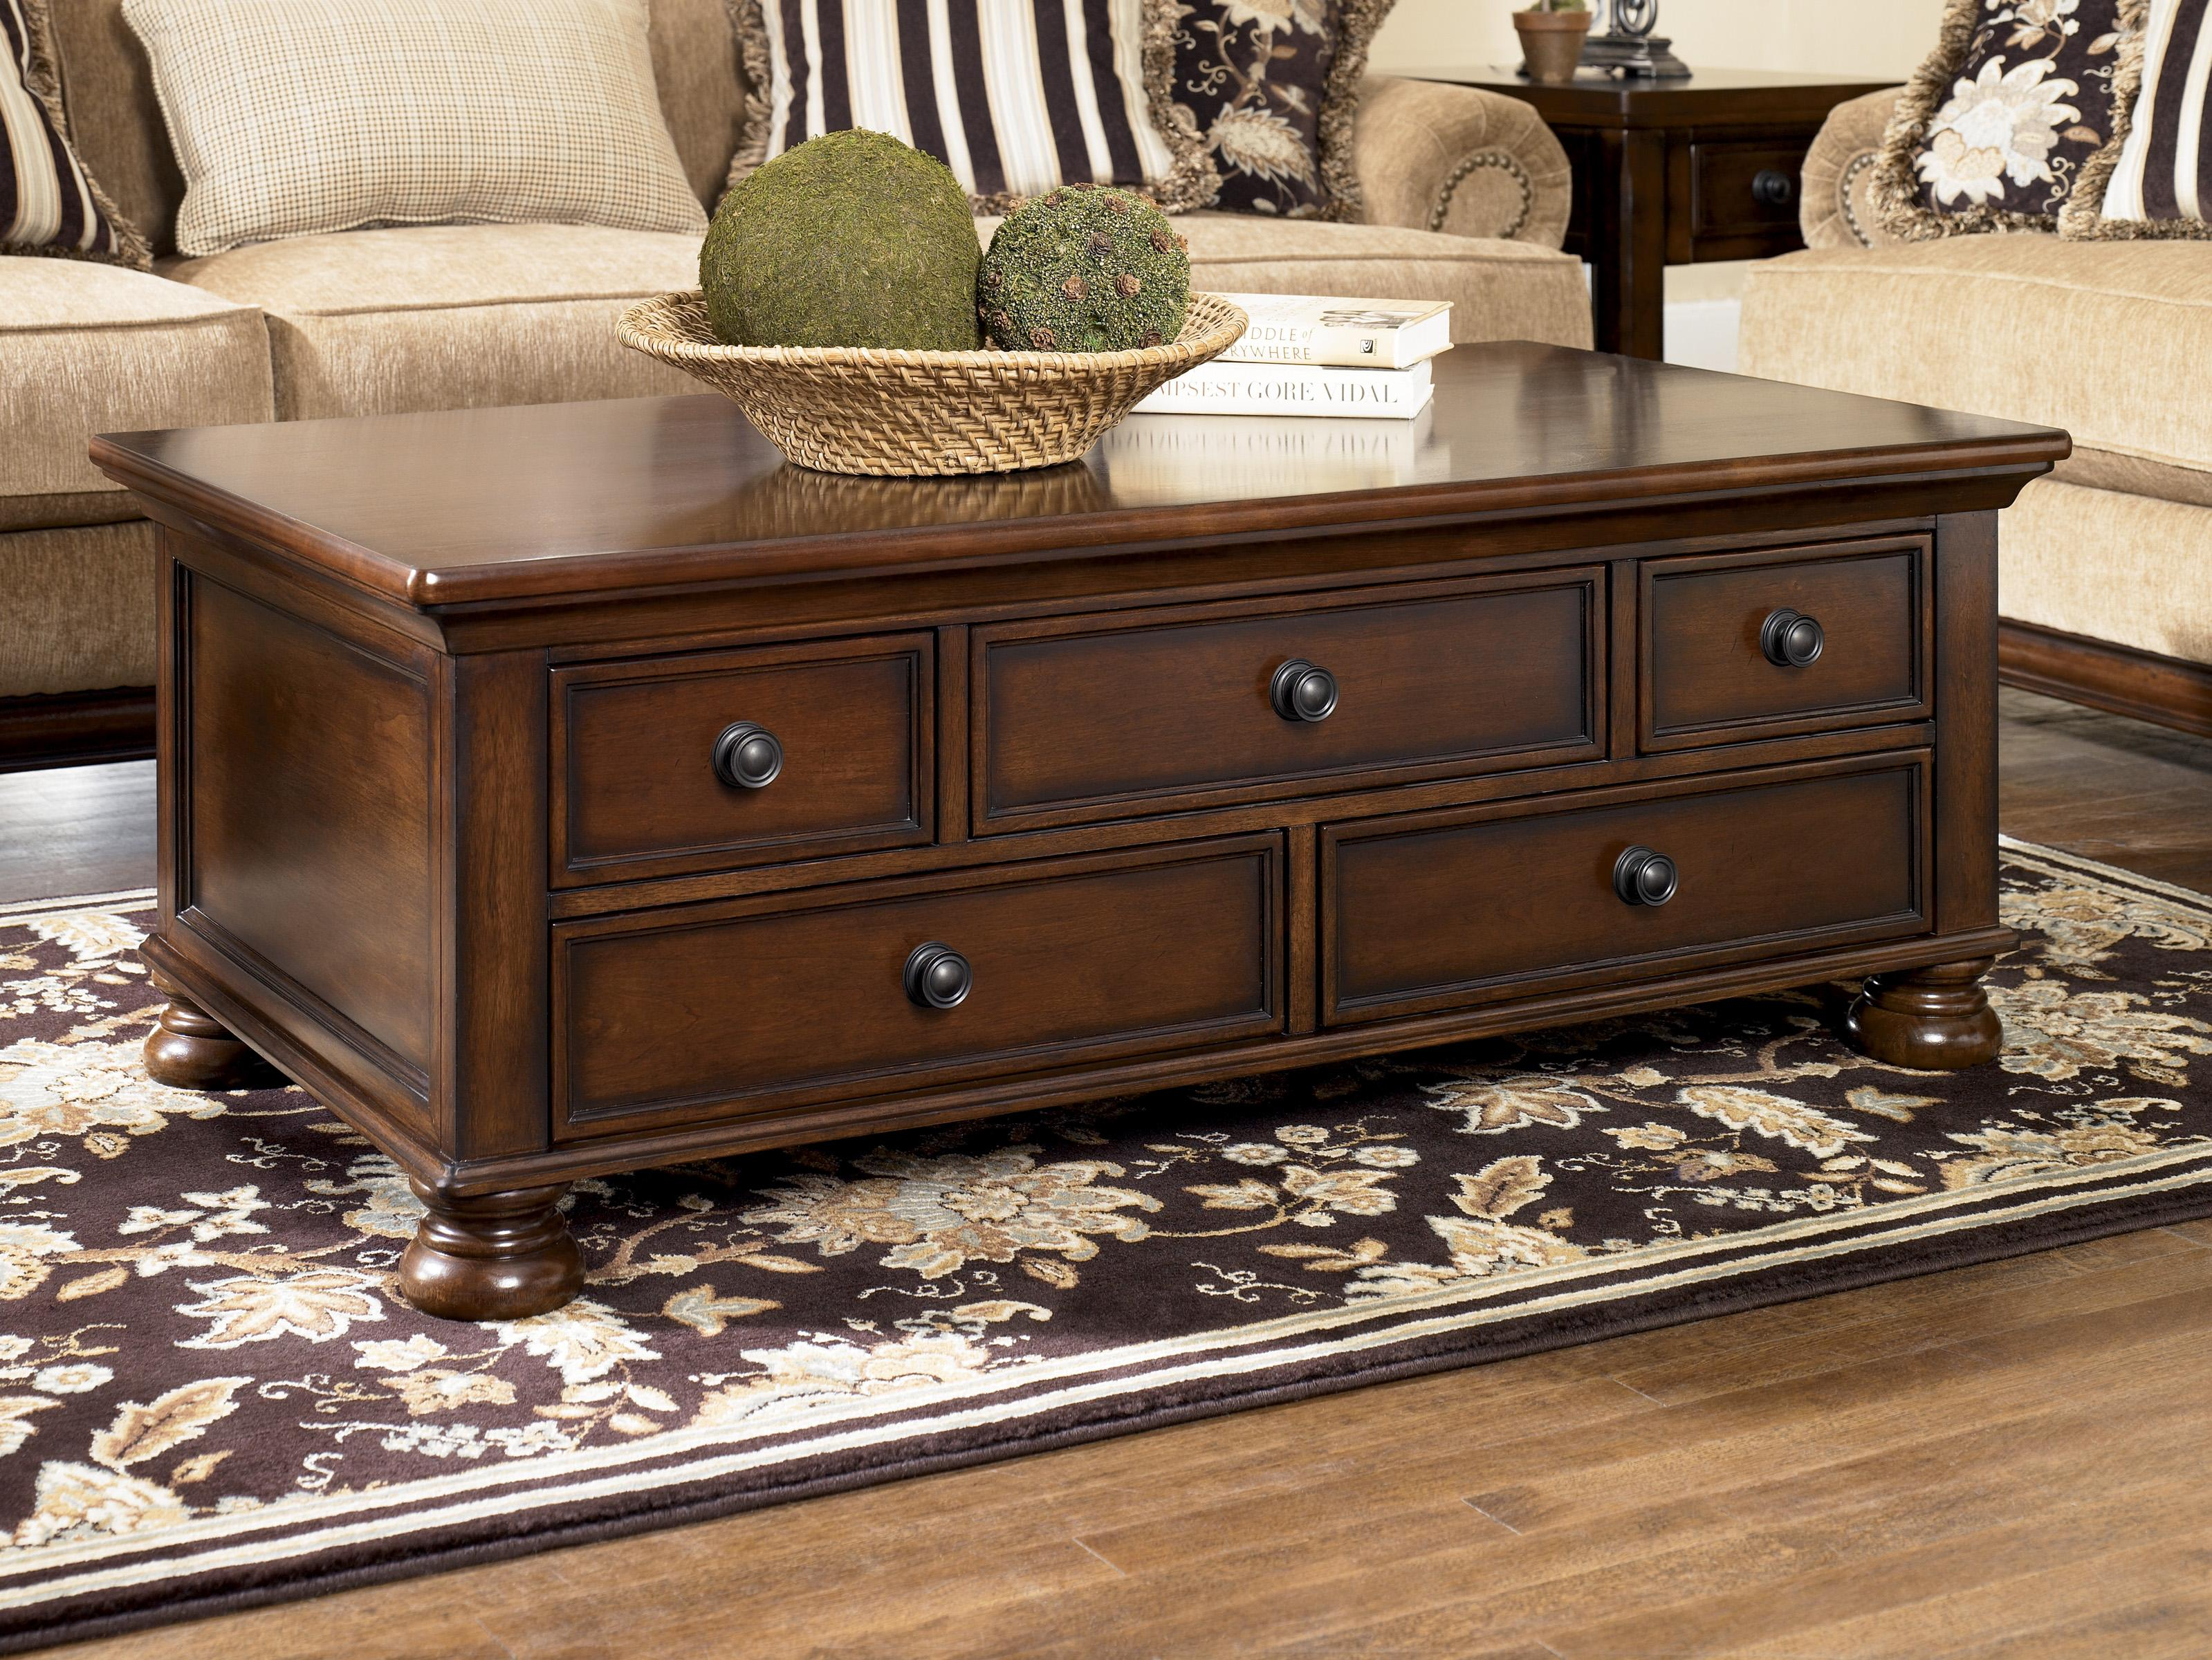 signature design ashley porter storage cocktail table with products color end drawers low narrow coffee tables london ontario magnolia home decor thomasville couches mission style